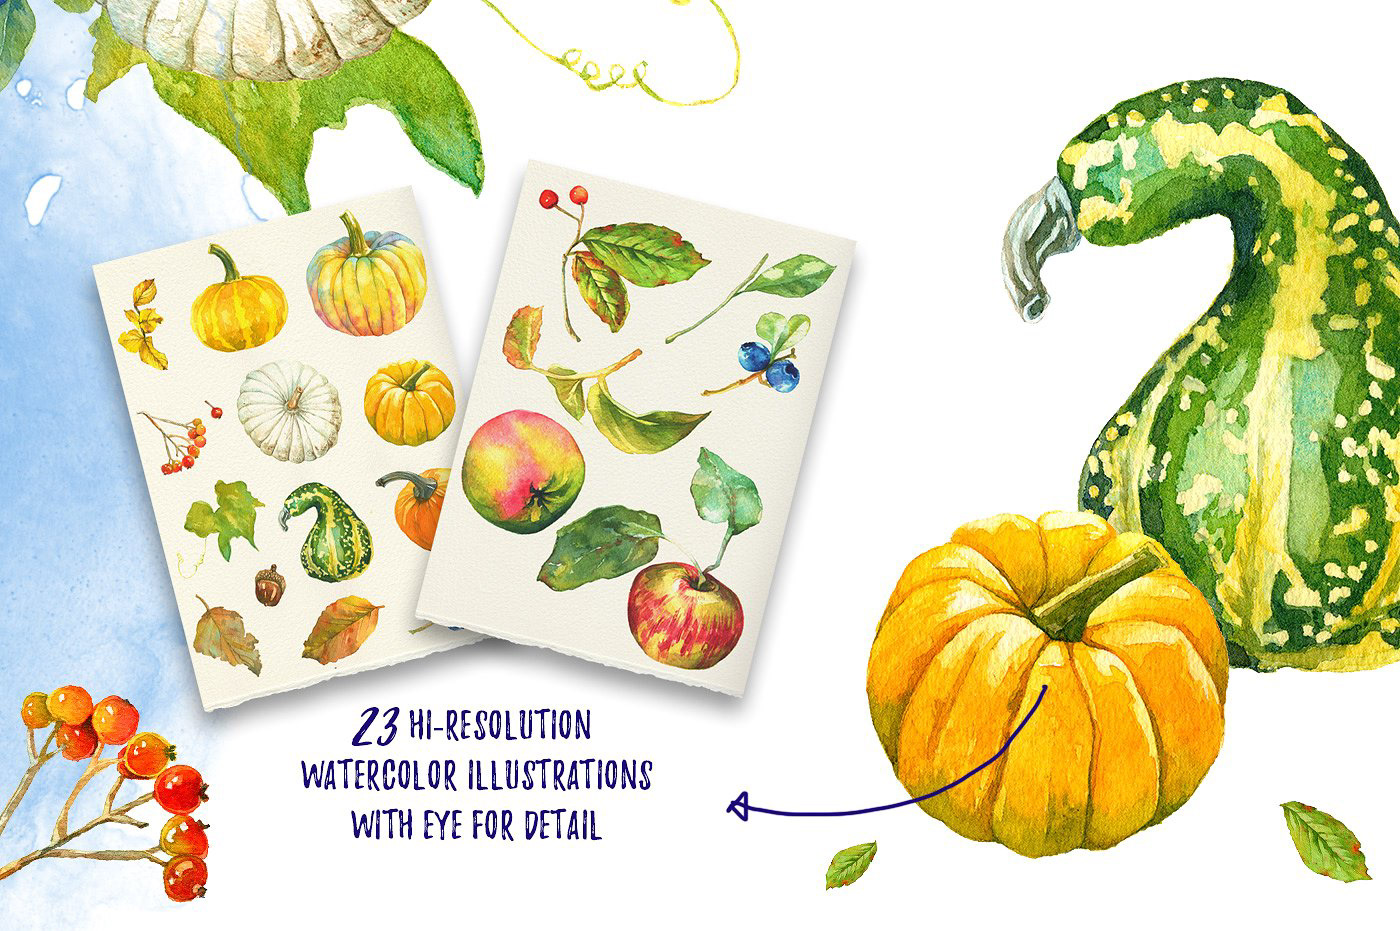 watercolor pumpkins berries leaves wedding autumn greeting cards decoration